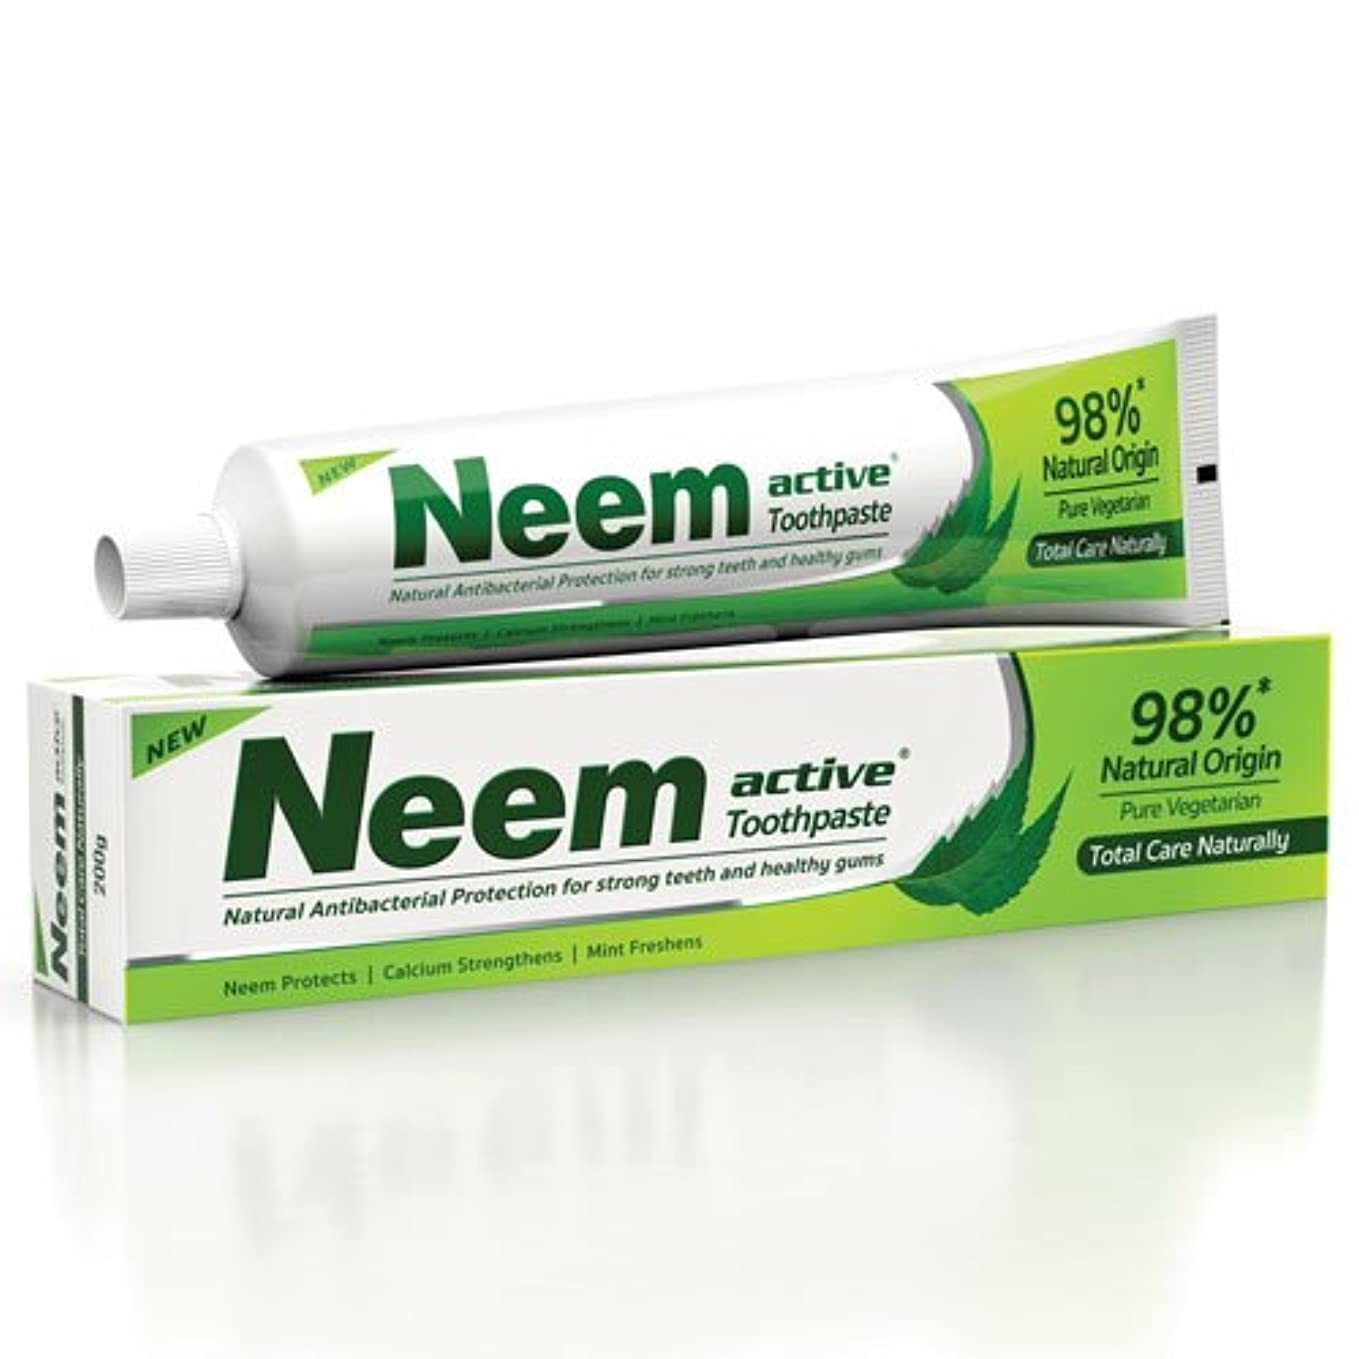 彼ゲインセイニュージーランドNeem Active Toothpaste (Natural Protection for Strong Teeth & Healthy Gums) by Henkel